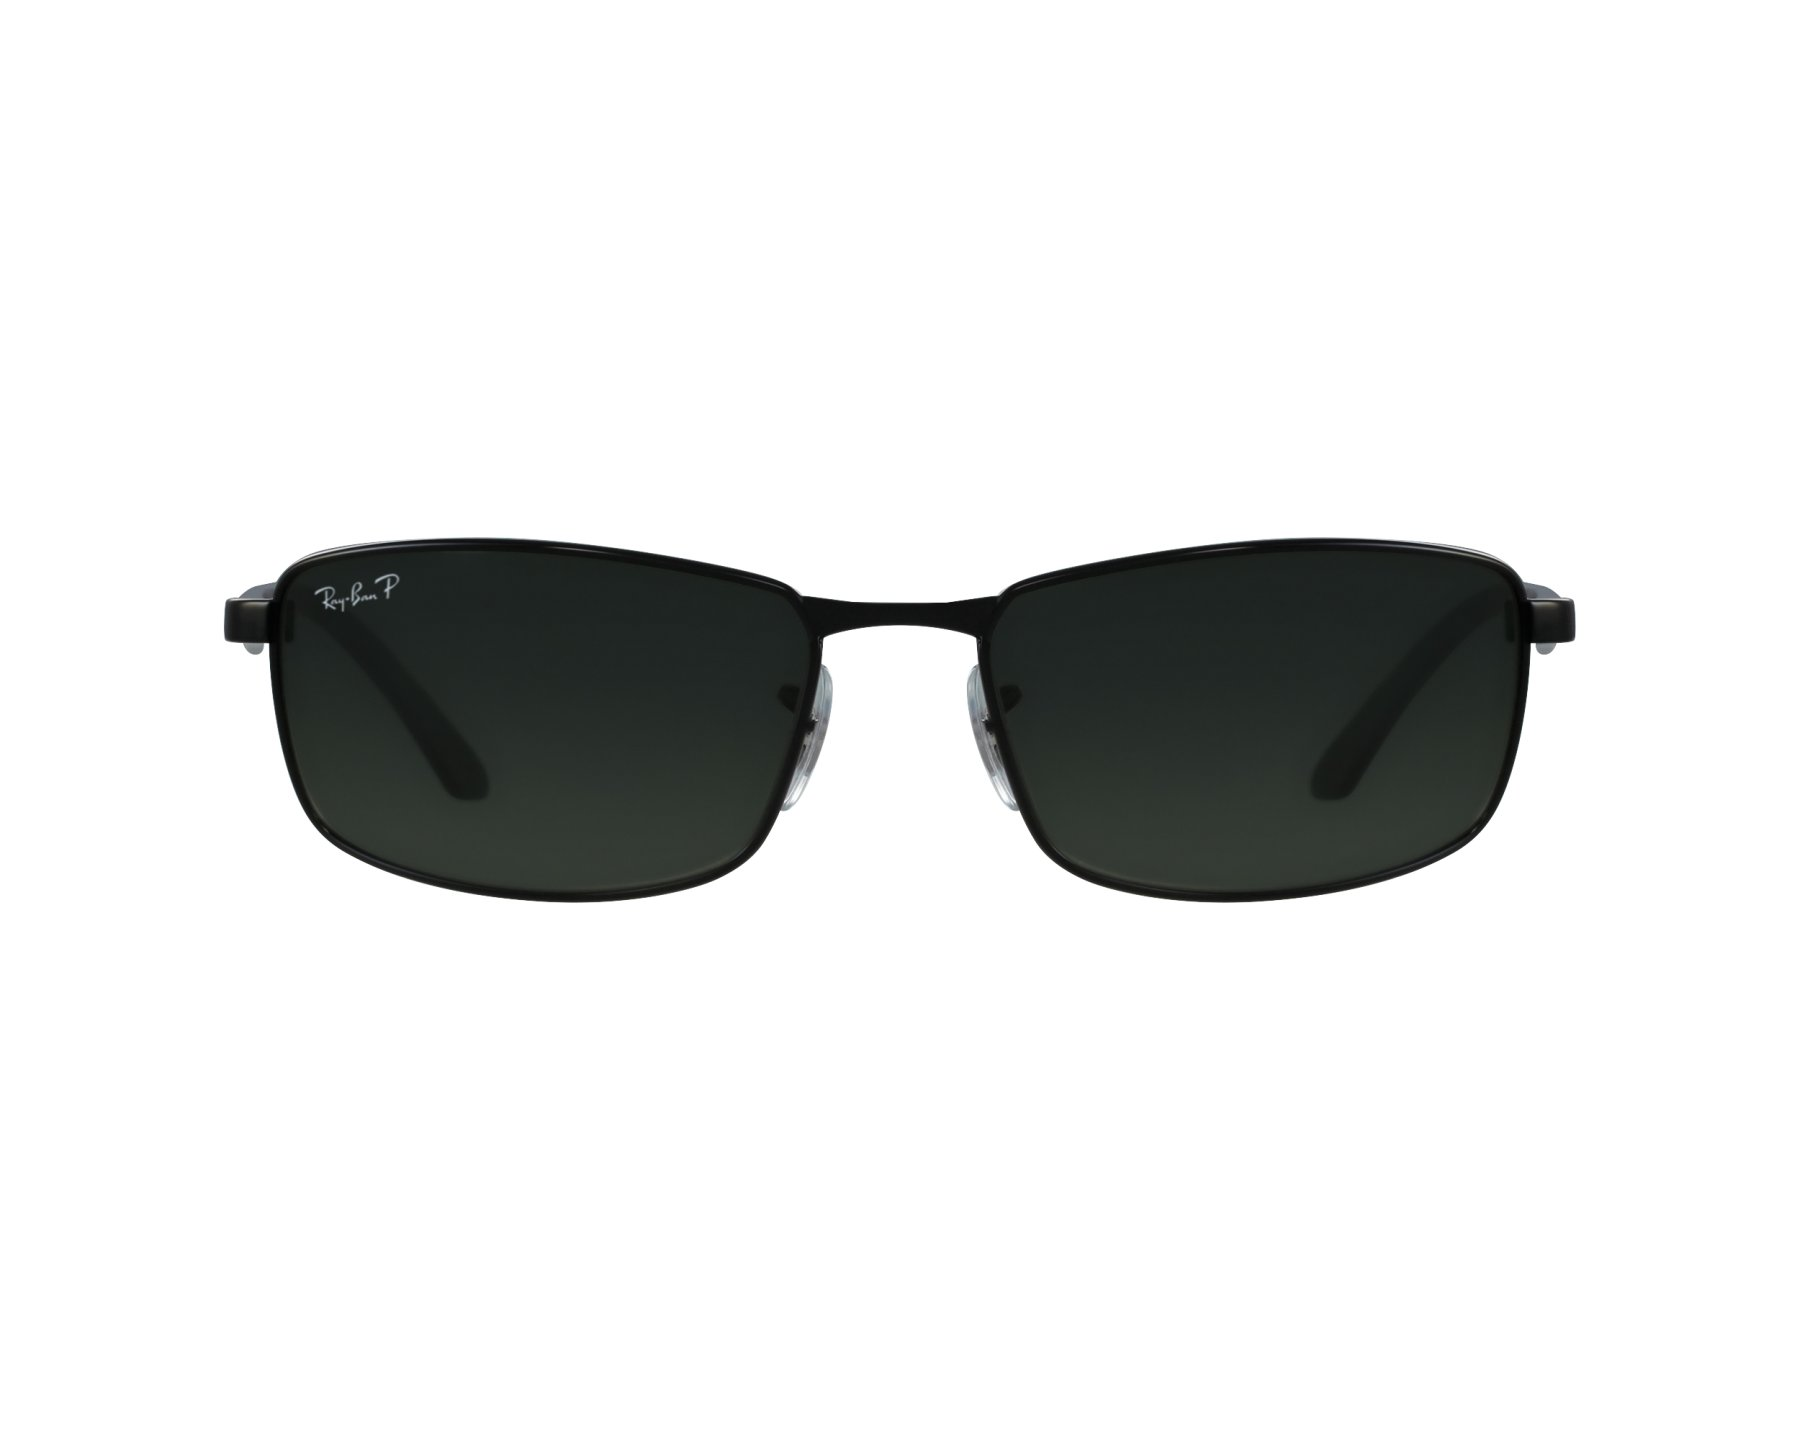 235f138e89 Sunglasses Ray-Ban RB-3498 002 9A 61-17 Black profile view